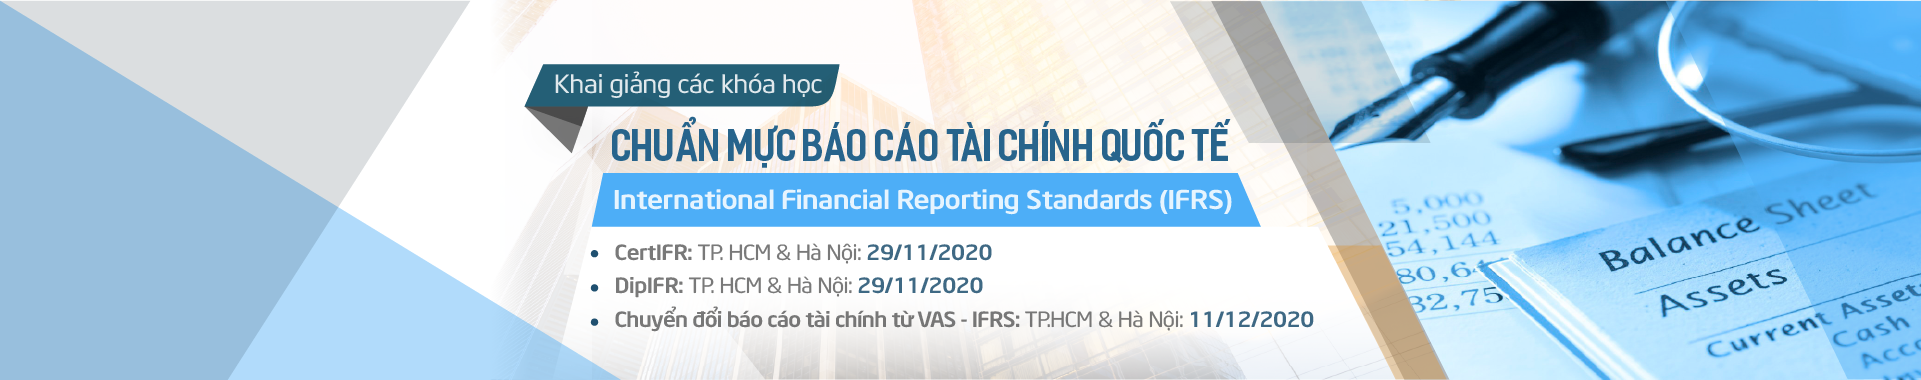 CHUAN MUC BCTC QUOC TE IFRS_Banner web